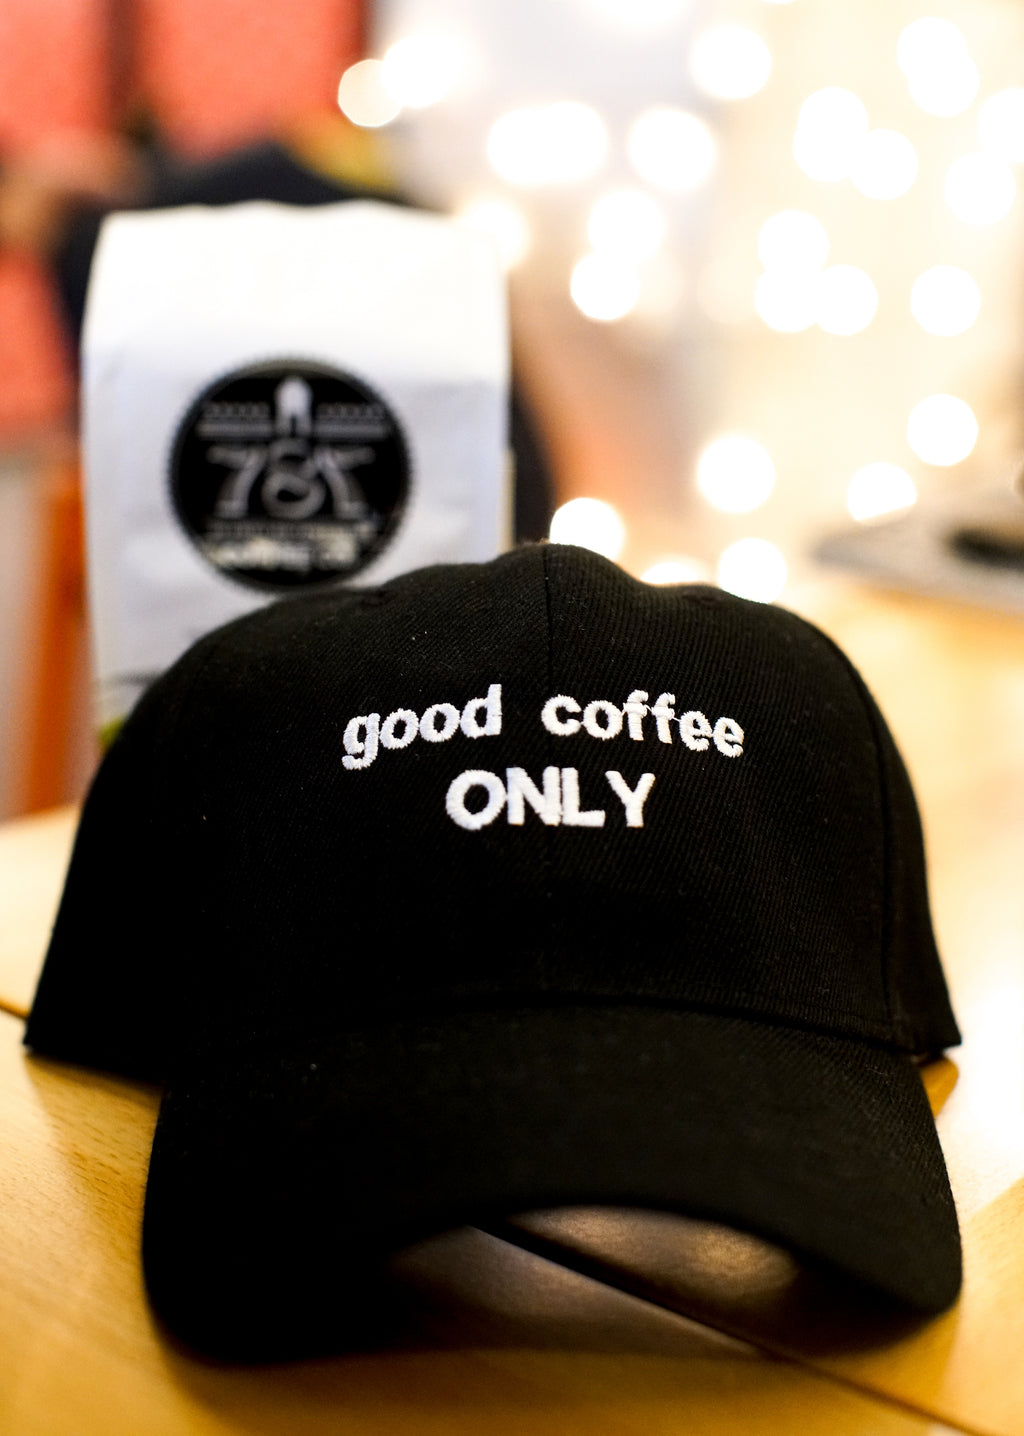 Good coffee Only - Hat - 787 Coffee